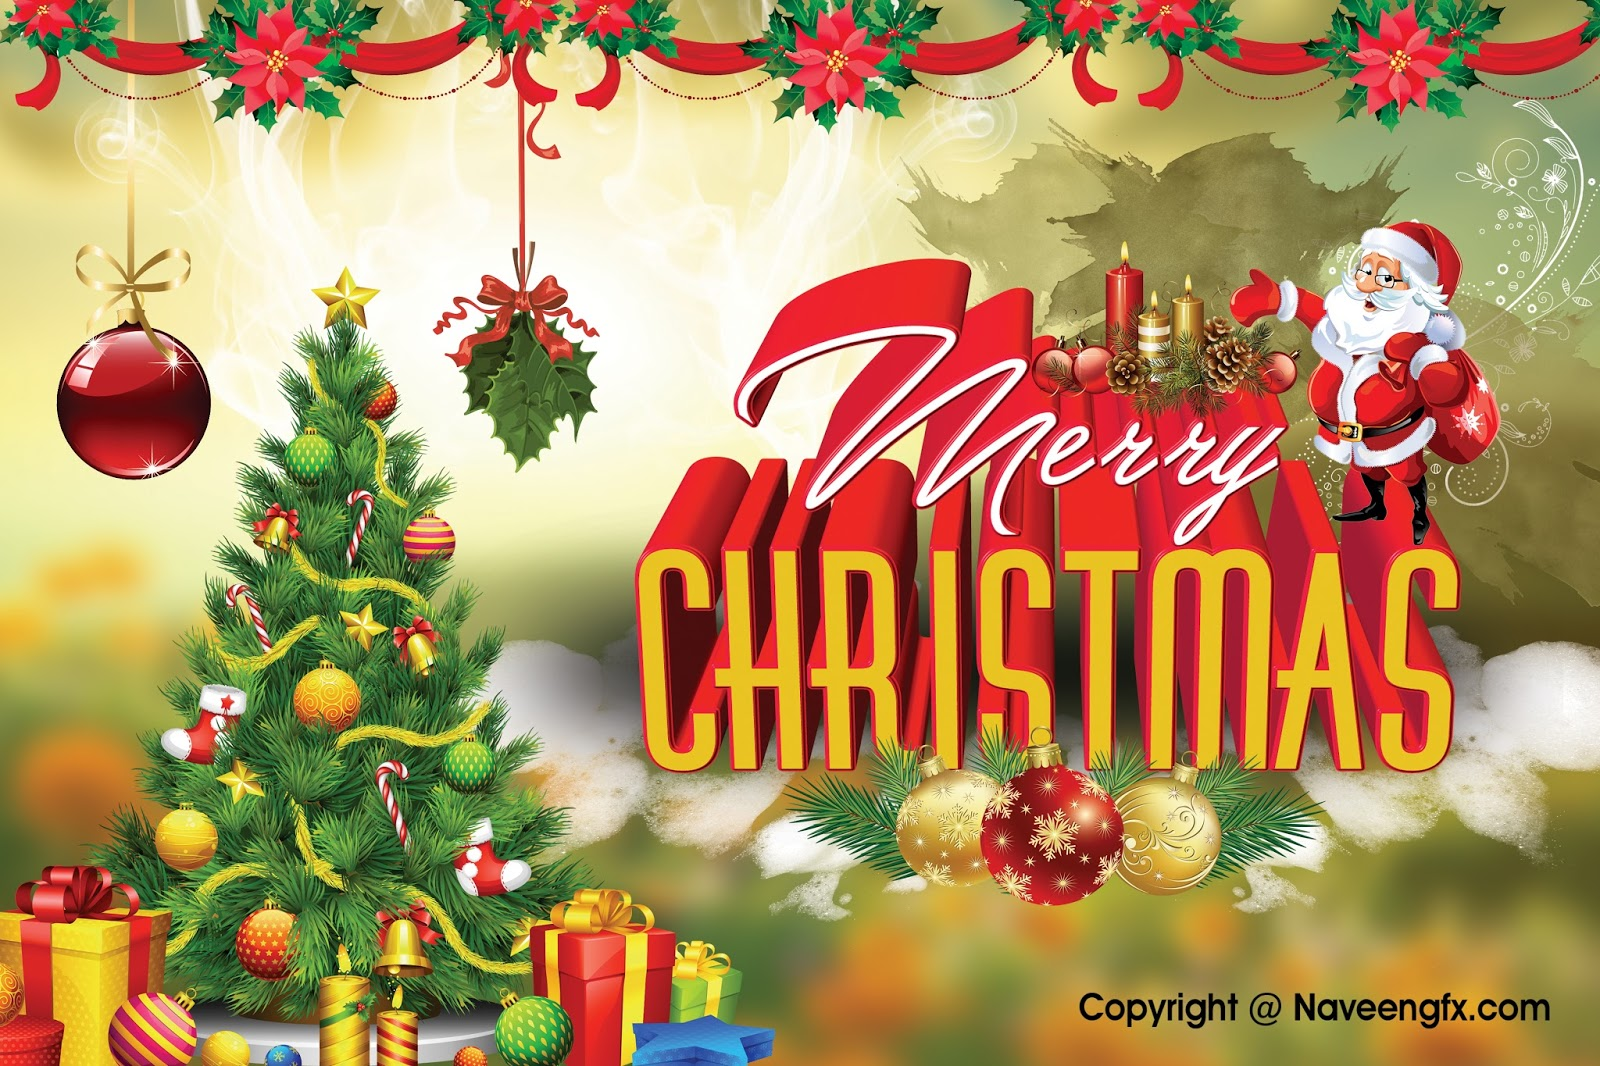 Merry Christmas Ecards And Greetings 3d Psd Background